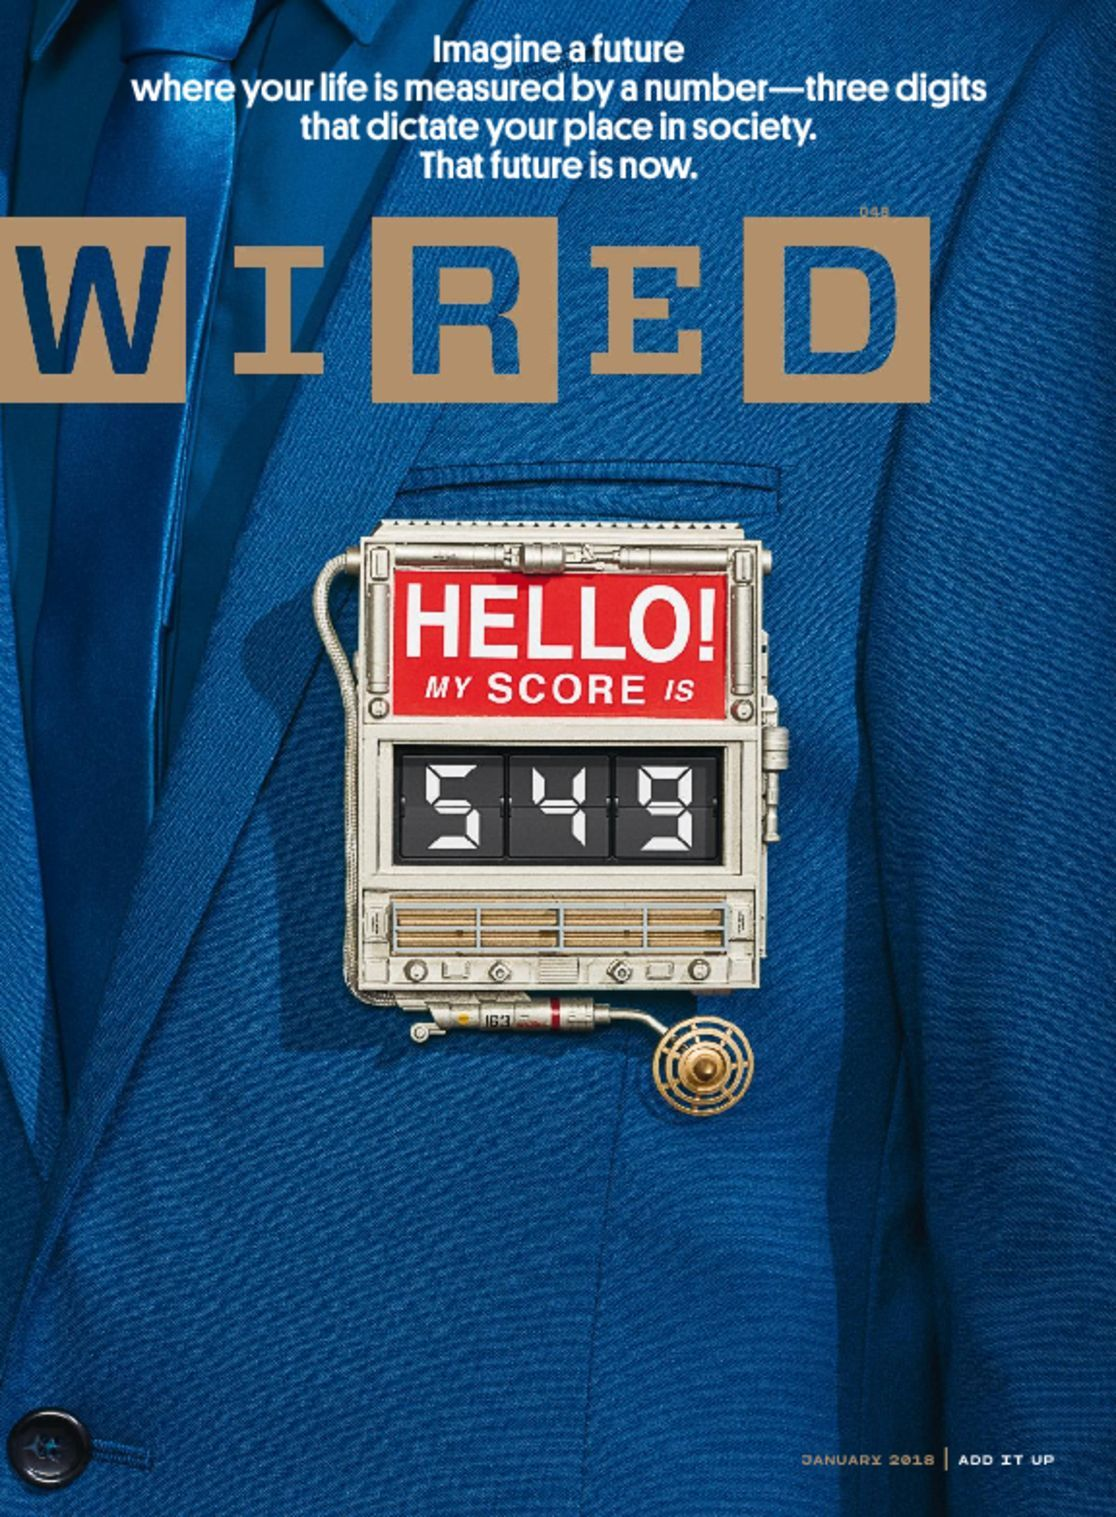 Home Design App For Kindle Fire Wired Magazine Culture Meets Design Discountmags Com